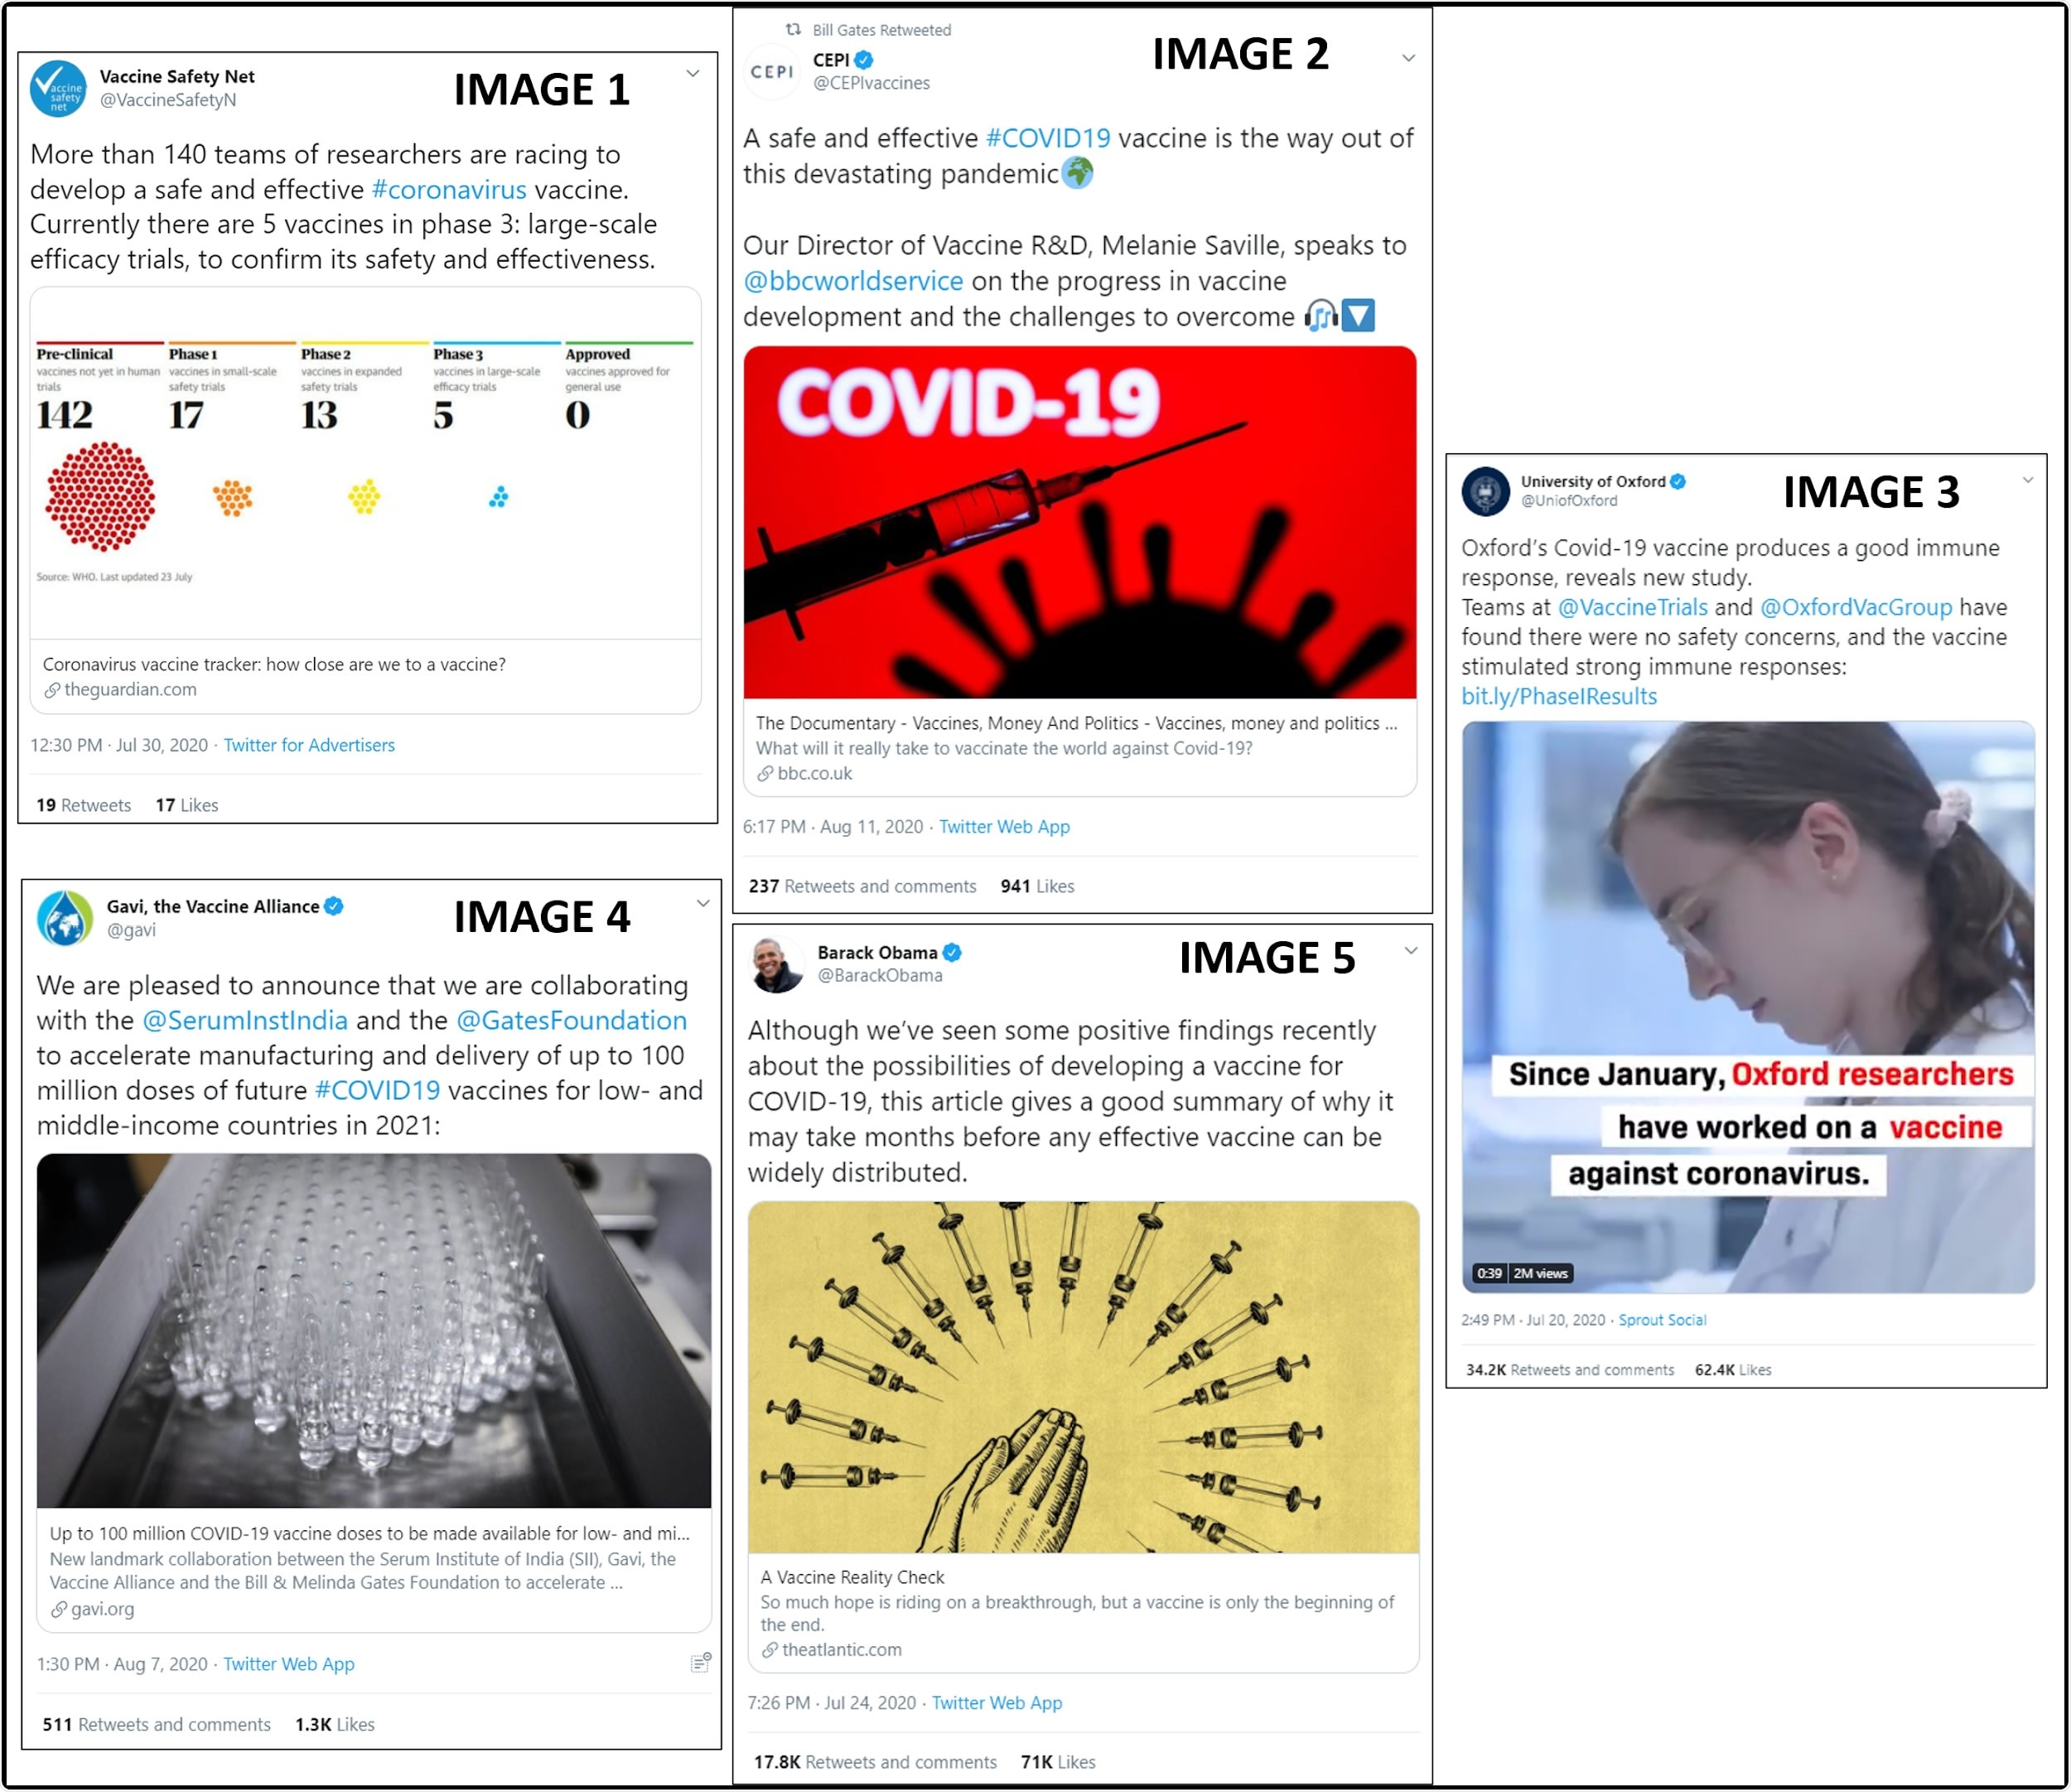 """Widely circulating factual information on social media surrounding a COVID-19 vaccine between June and August 2020. The same five images were selected (see Methods) for exposure to respondents in the UK and US. These """"control"""" image sets were shown to 1,000 respondents in the UK and the US."""